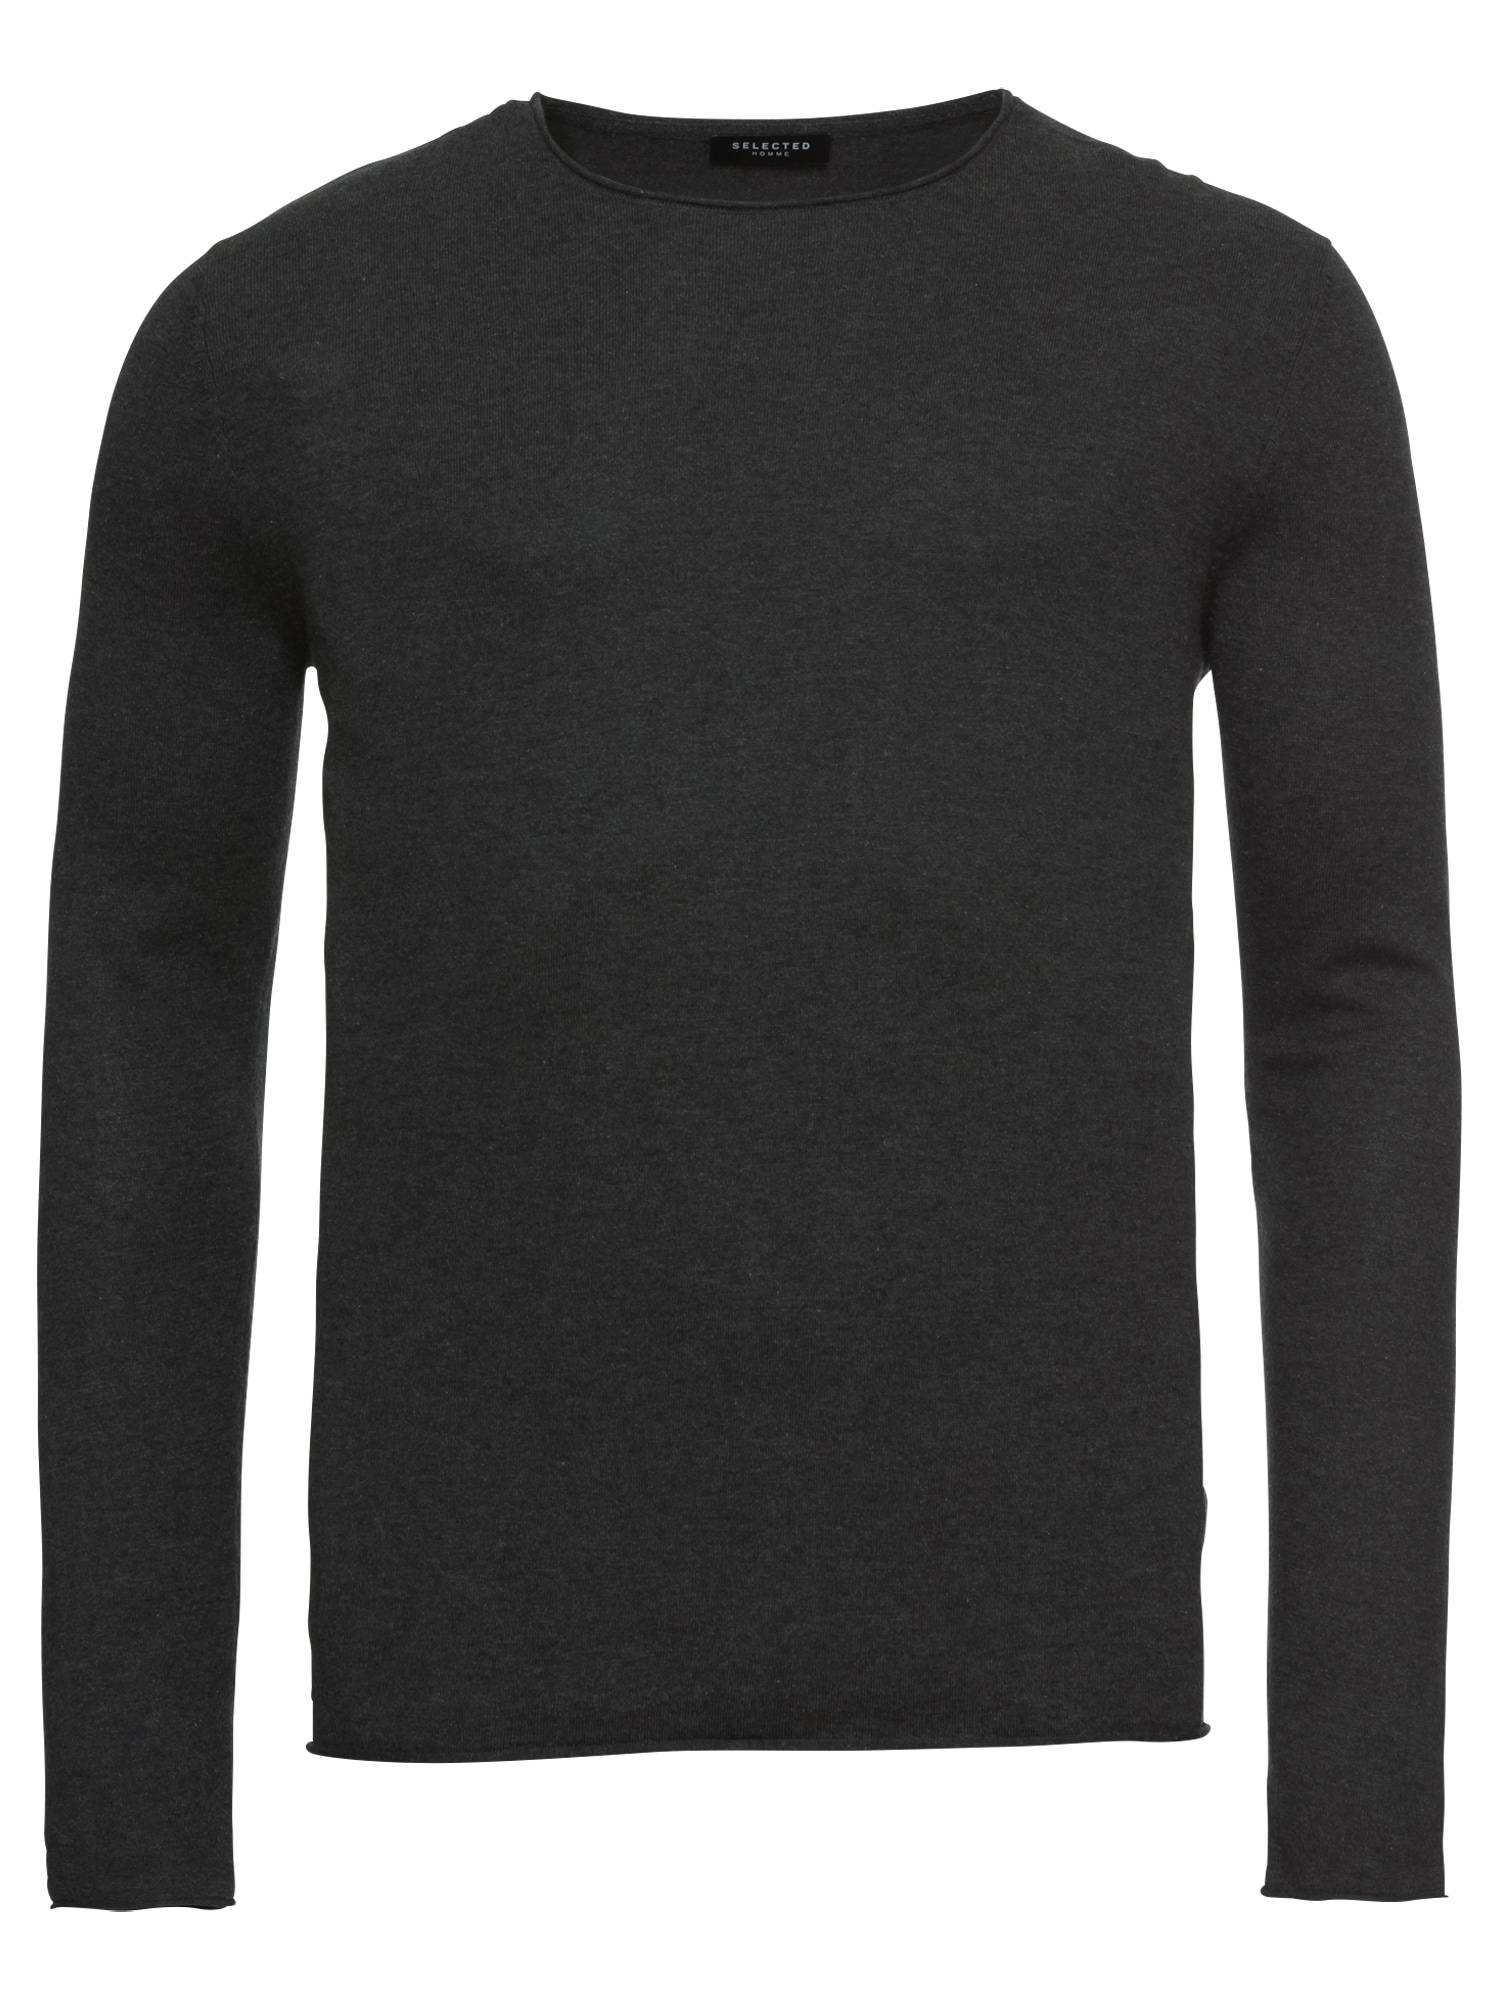 SELECTED HOMME Pull-over 'SHDDOME CREW NECK NOOS'  - Gris - Taille: S - male